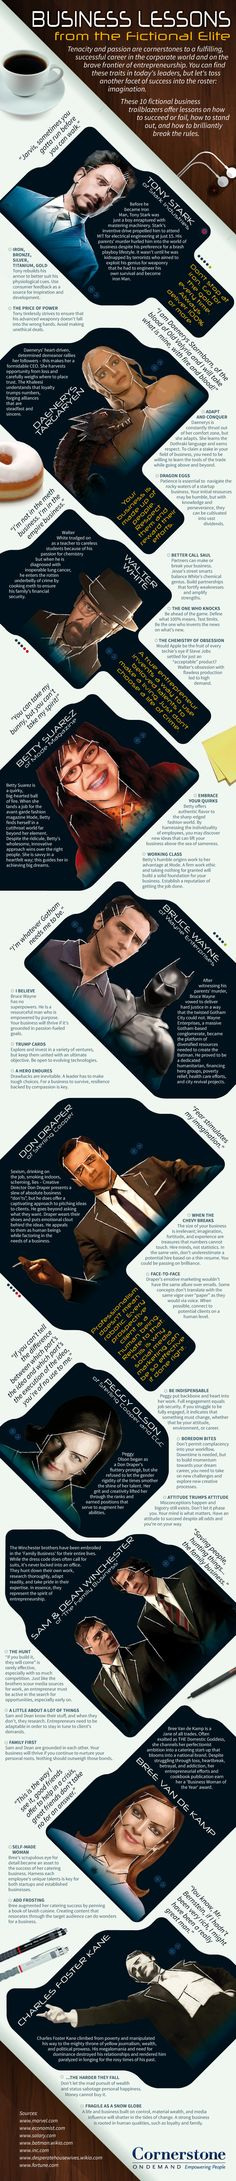 Learn better business skills from fictional characters like Batman and Walter White